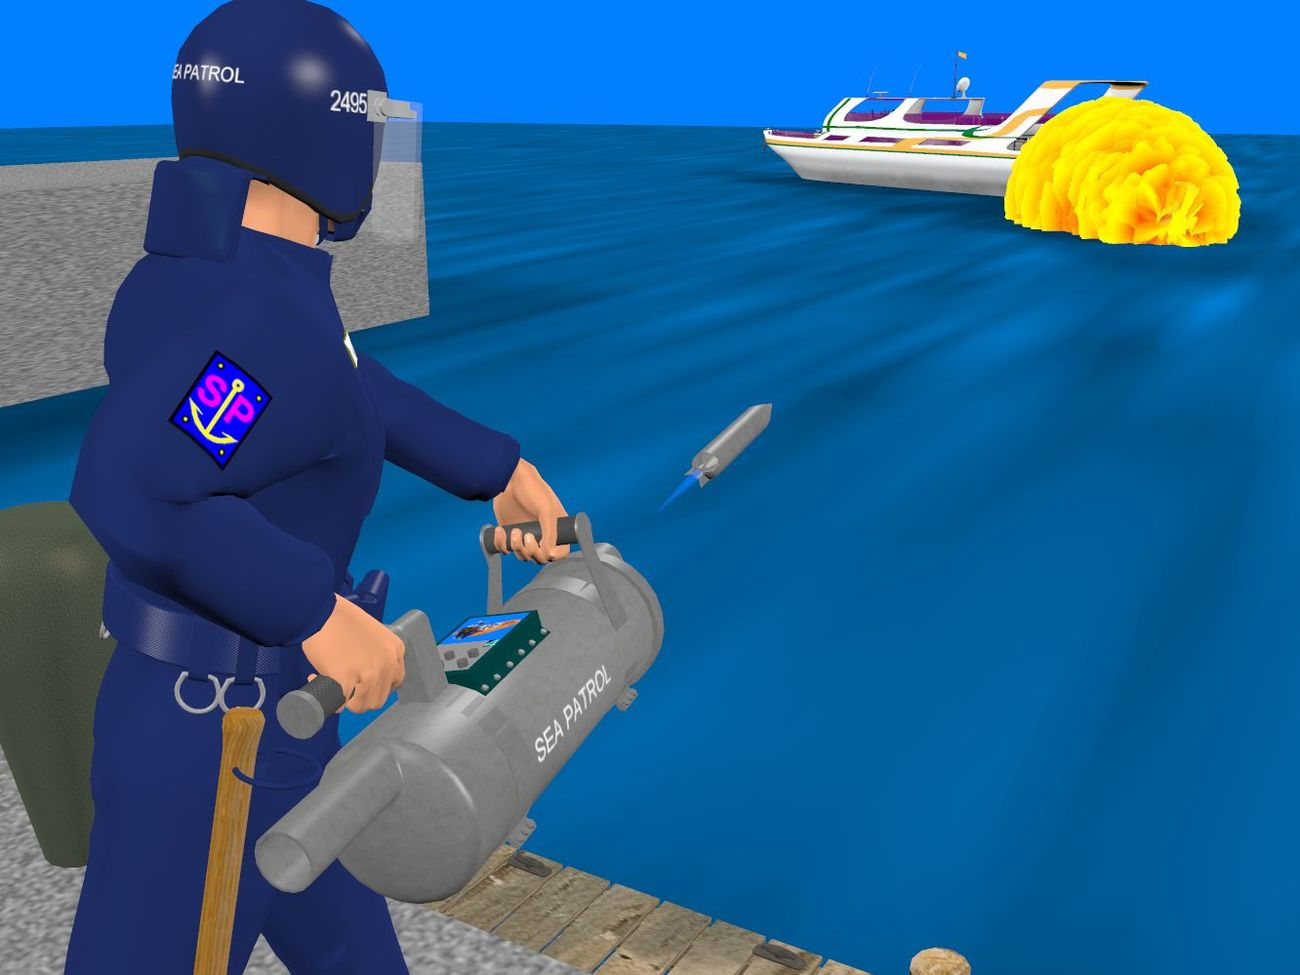 Sea Patrol - new weapon proved by Anthony Appleyard